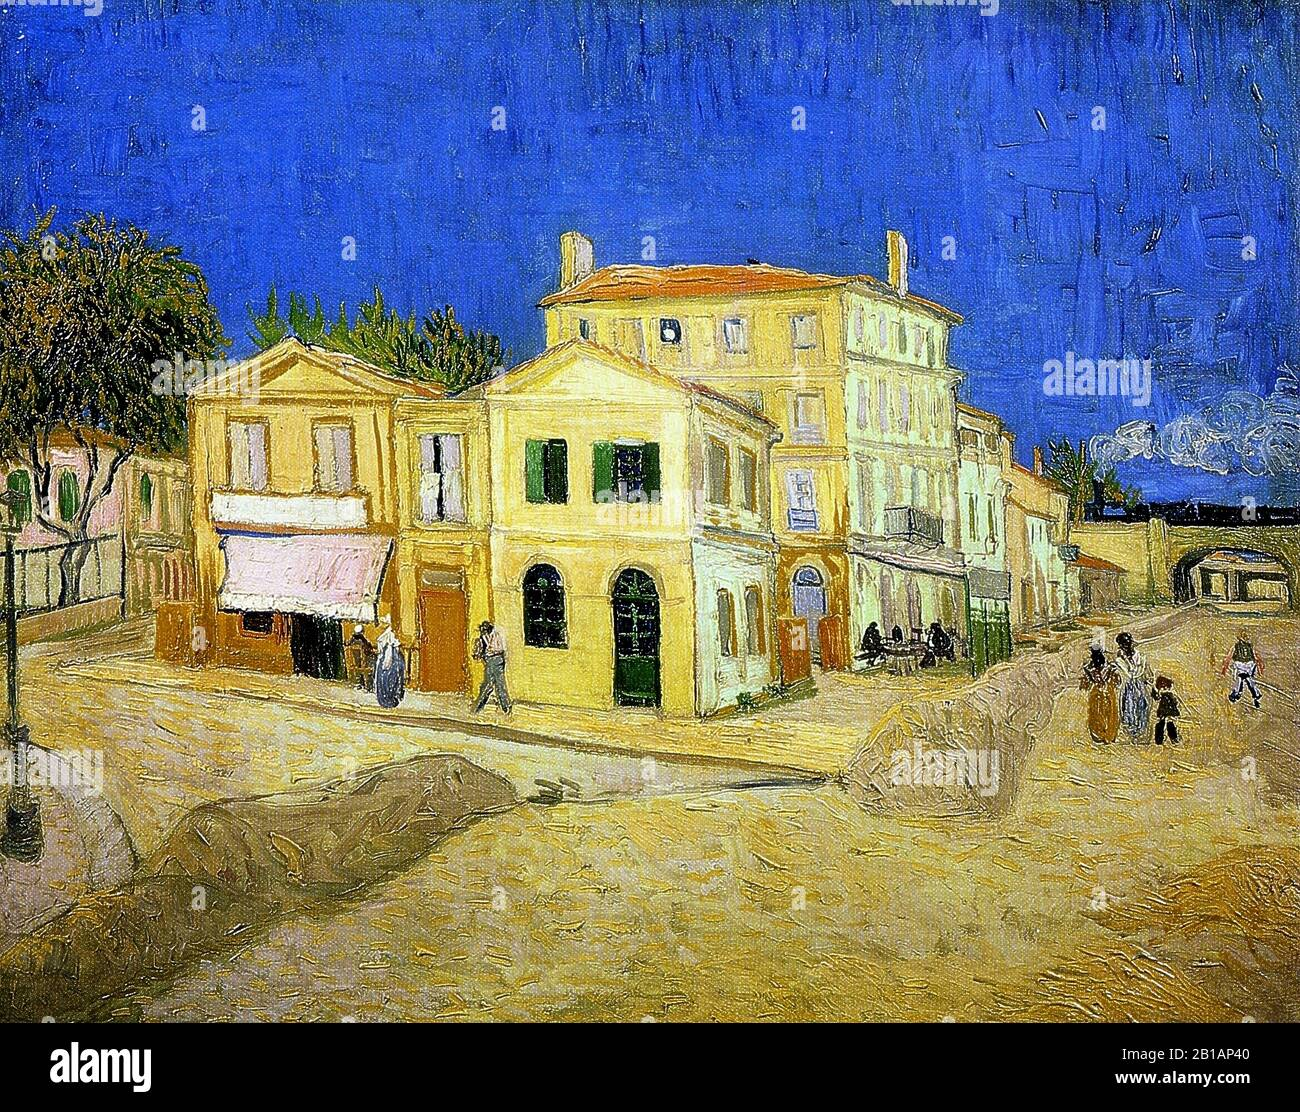 Maison Jaune High Resolution Stock Photography and Images - Alamy